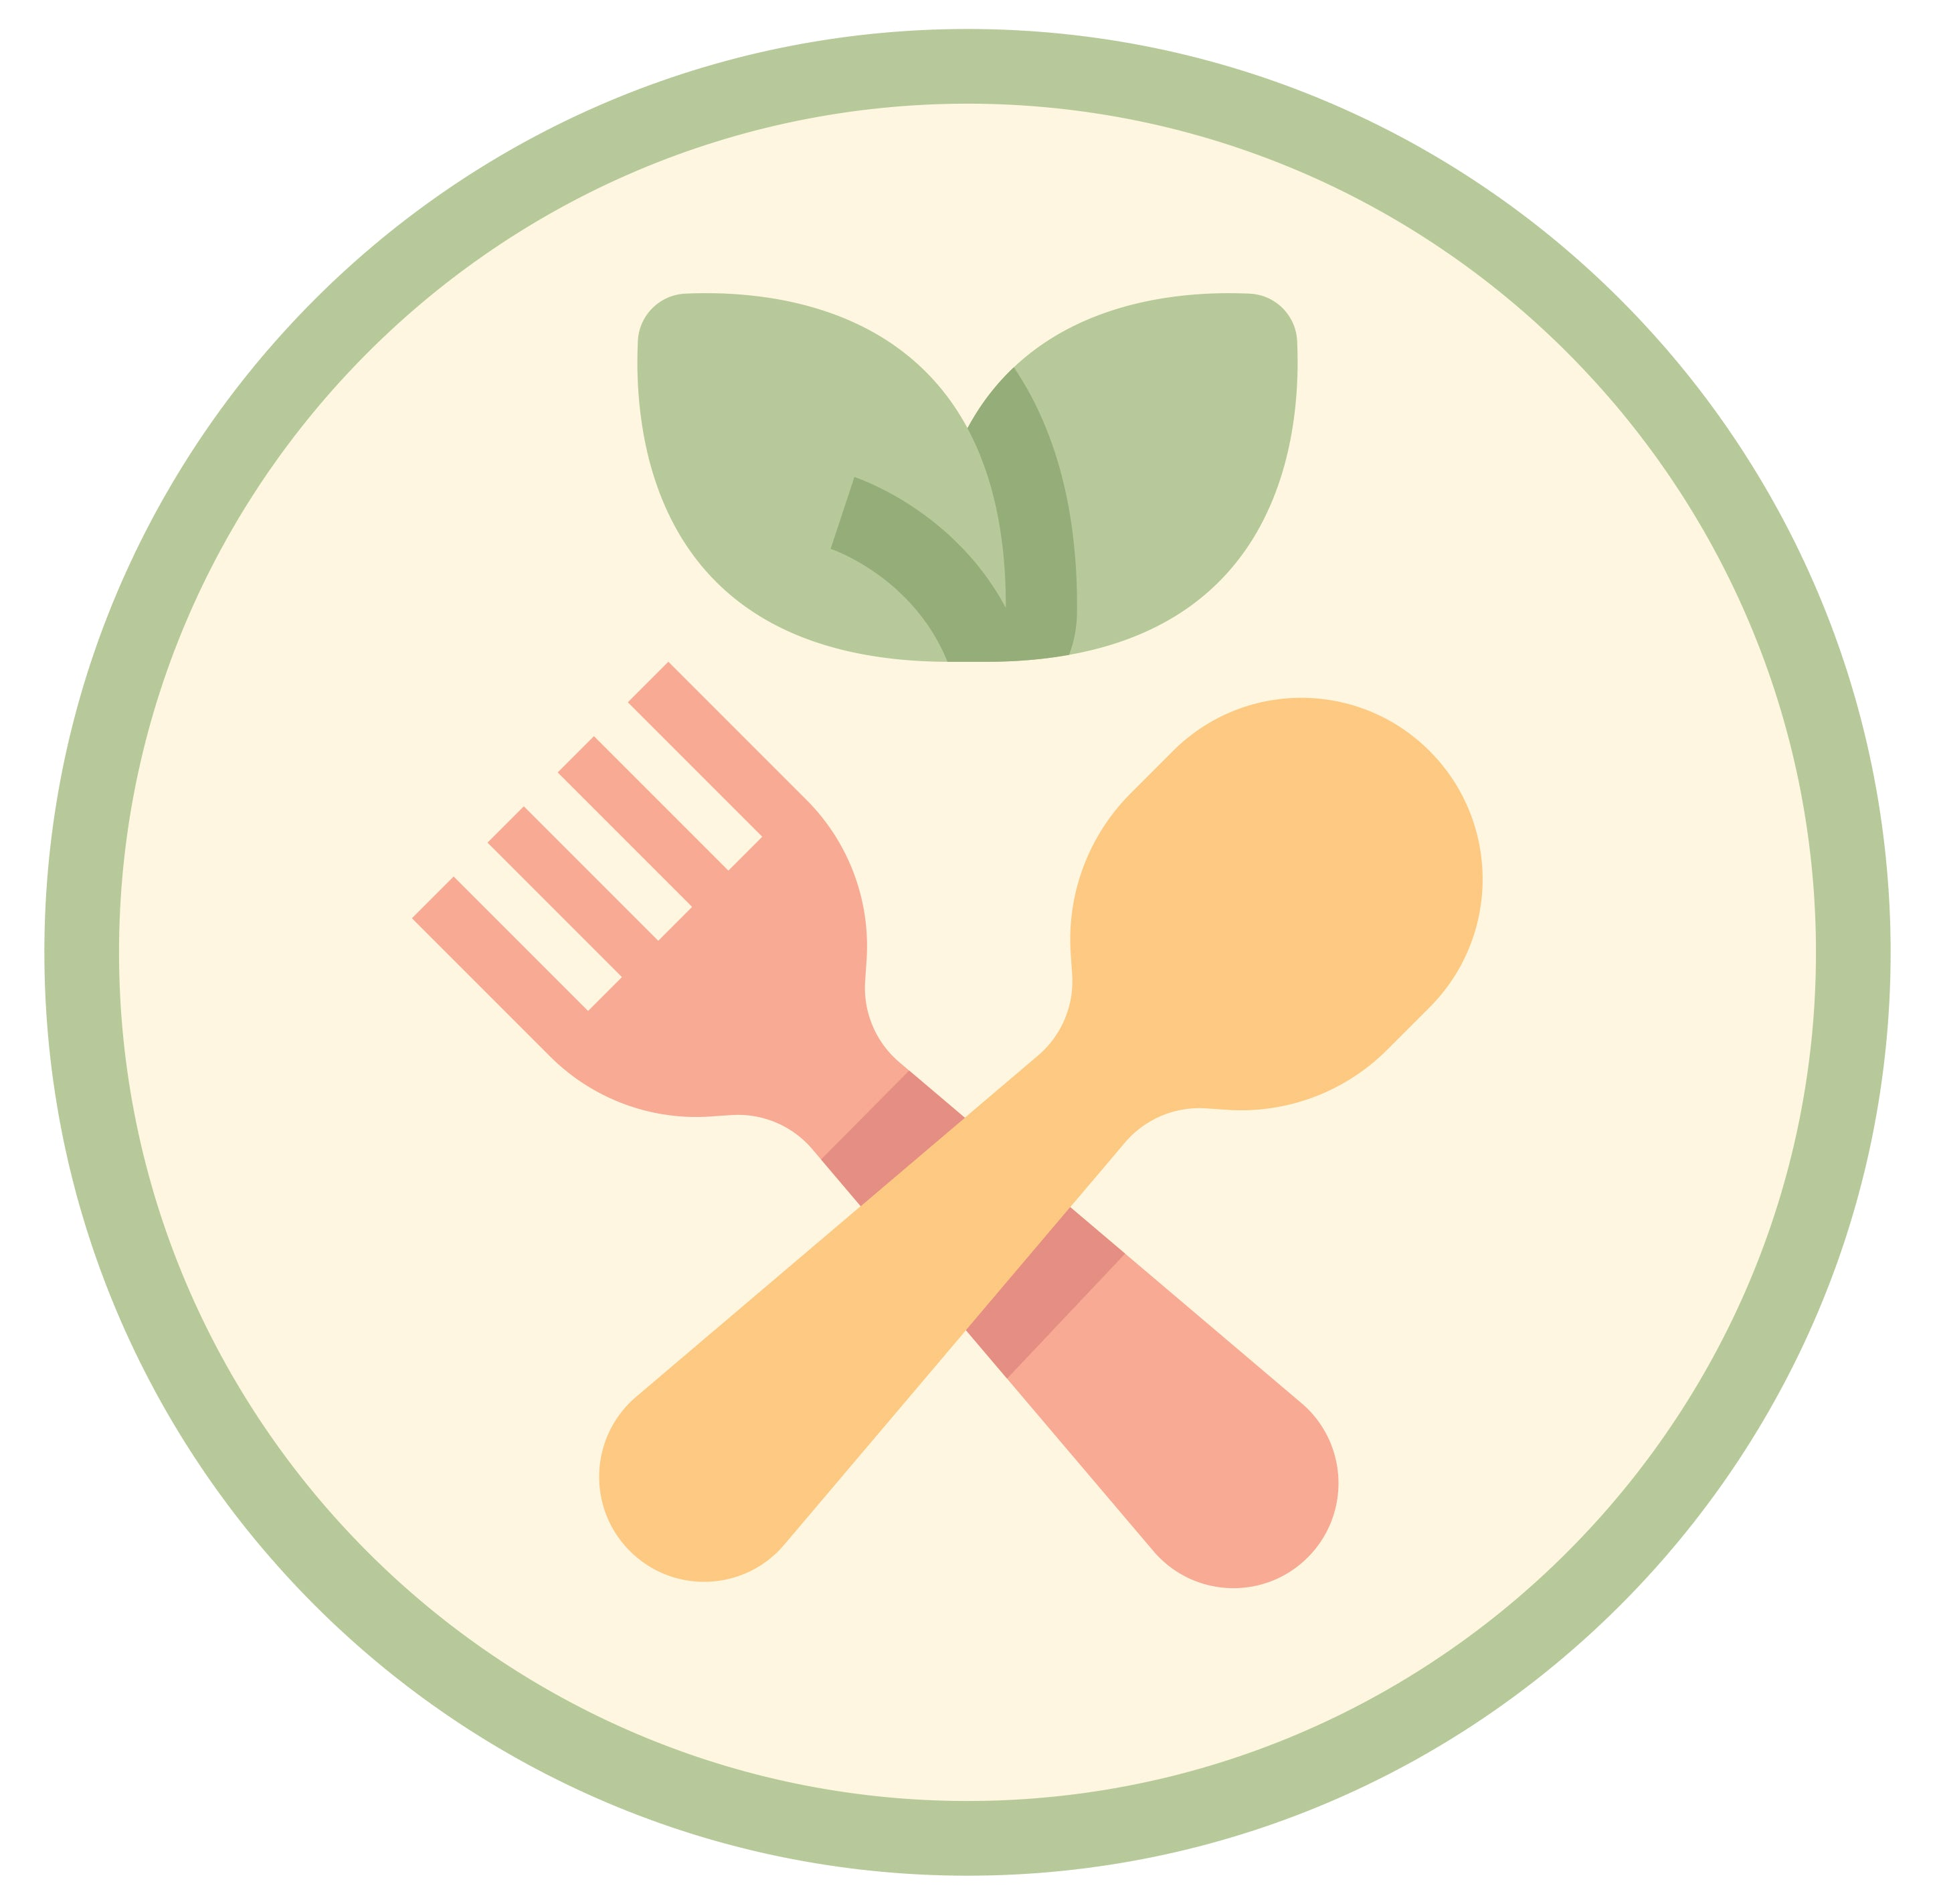 Portion Food - How To Live Sustainable - Eco Living and Sustainability Checklist